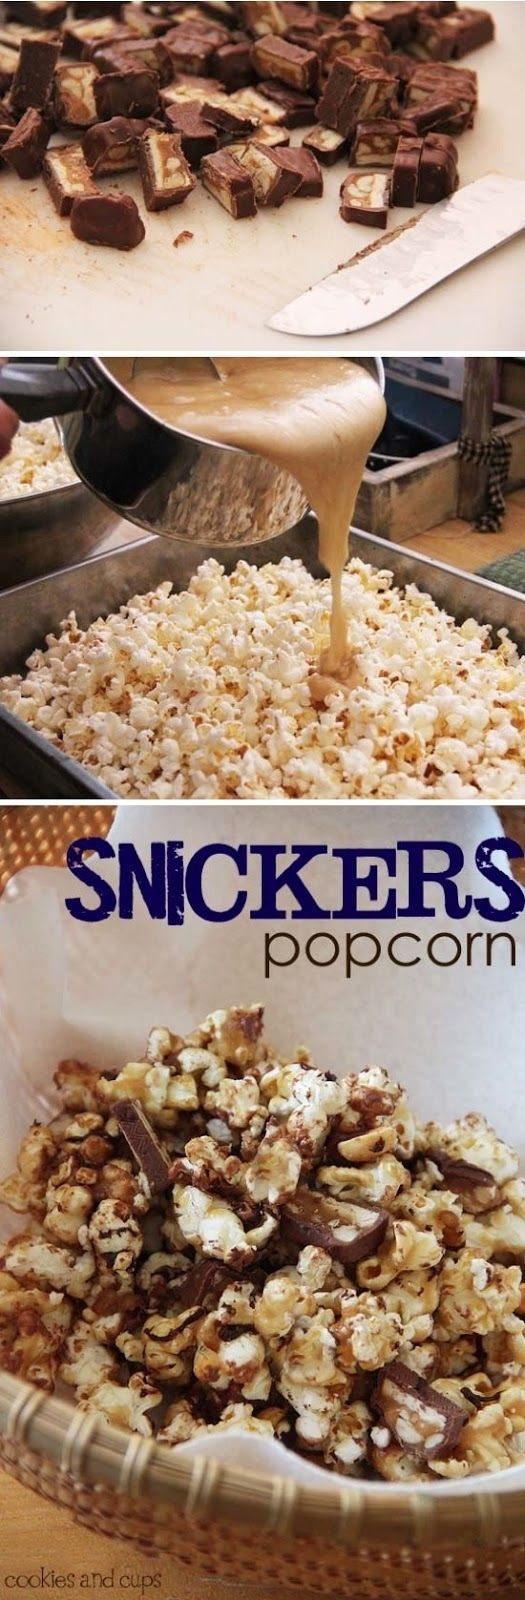 Snickers Popcorn. I'm thinking Mars bars would be good too!